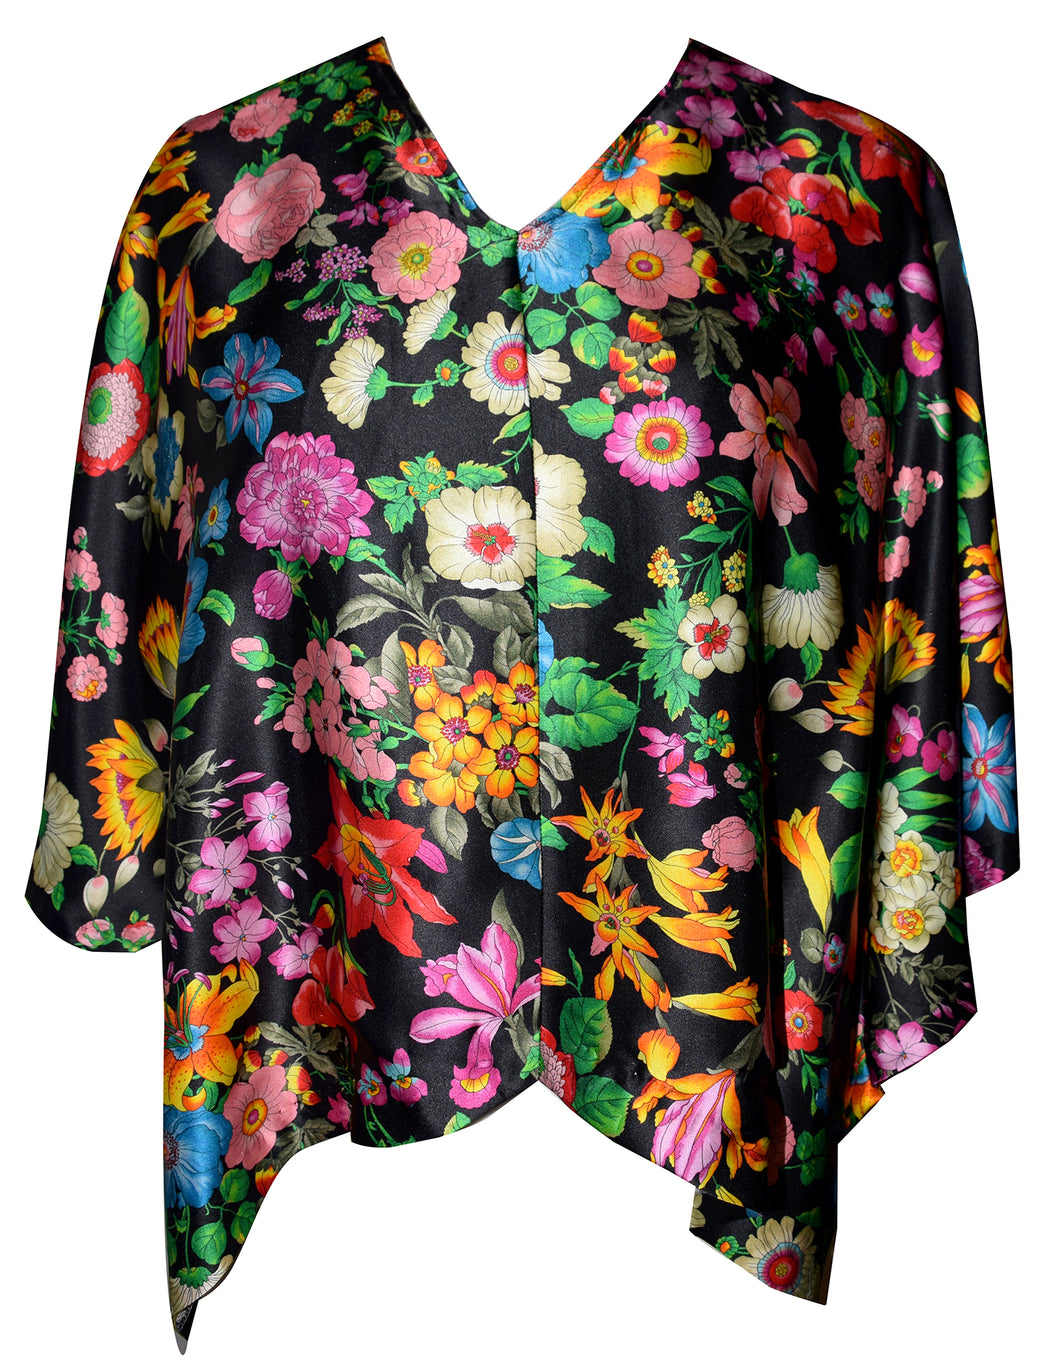 Exquisite One of a Kind Floral 100% Silk Poncho